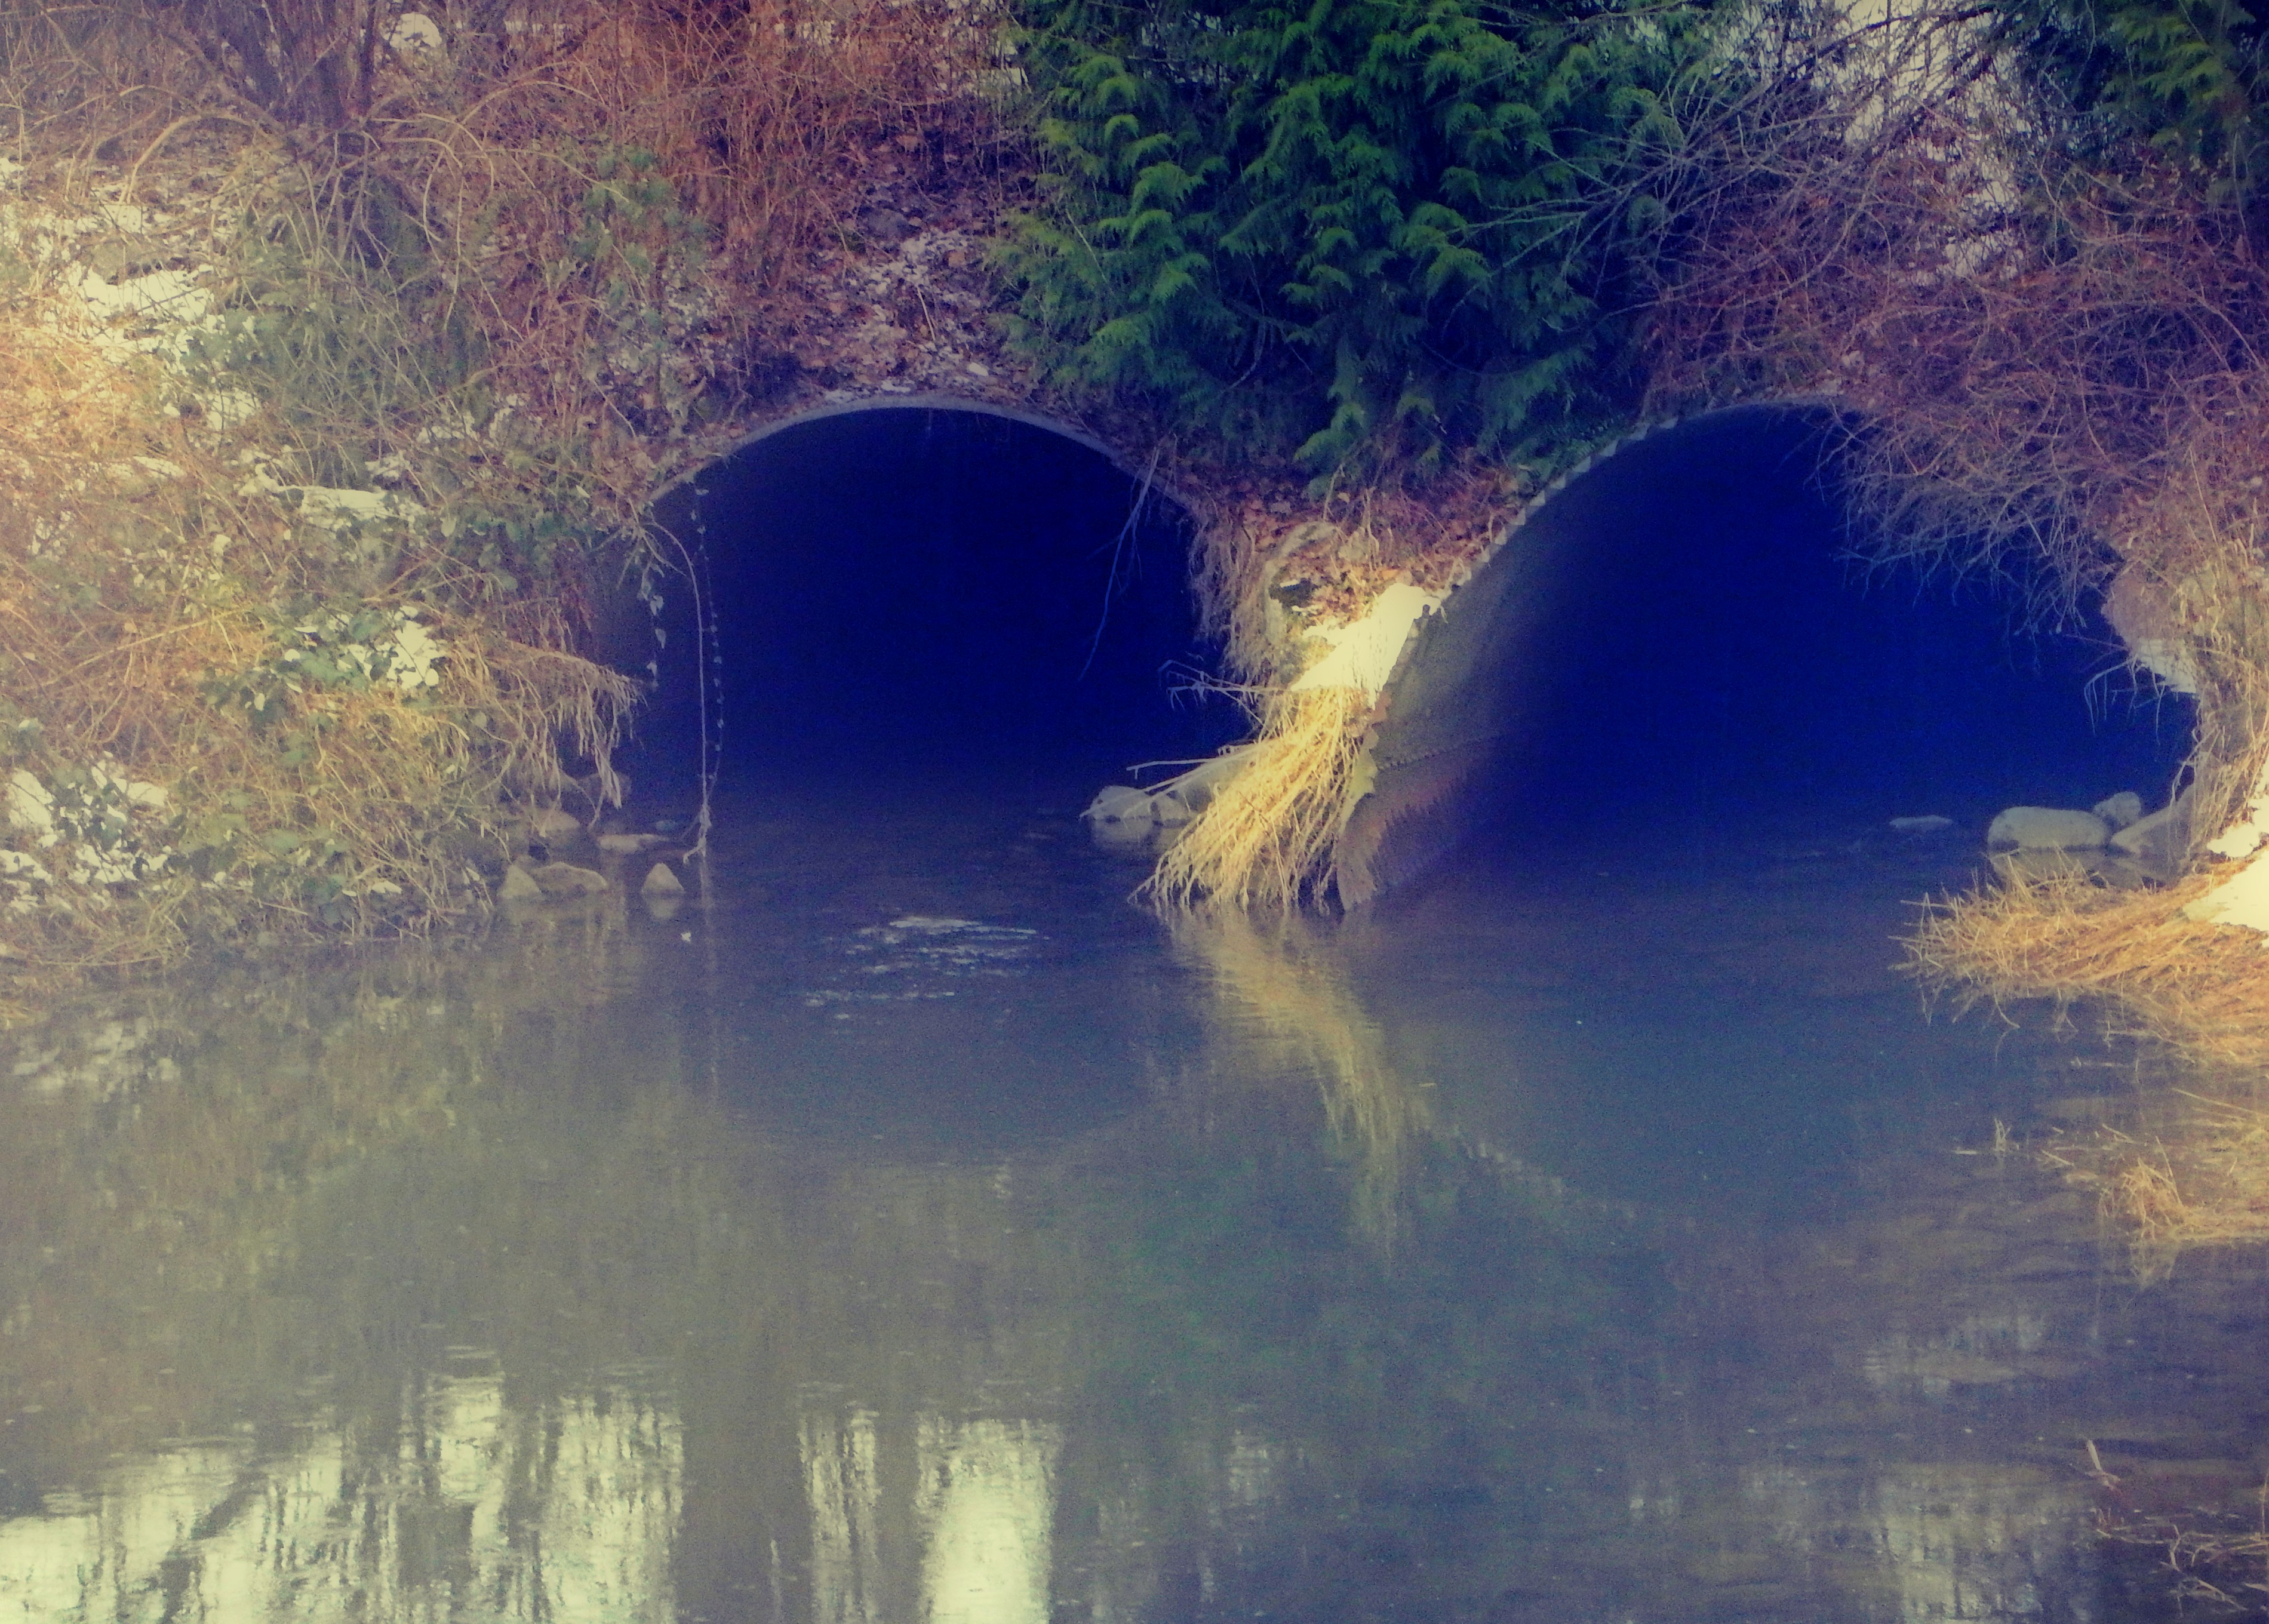 Water Tunnels